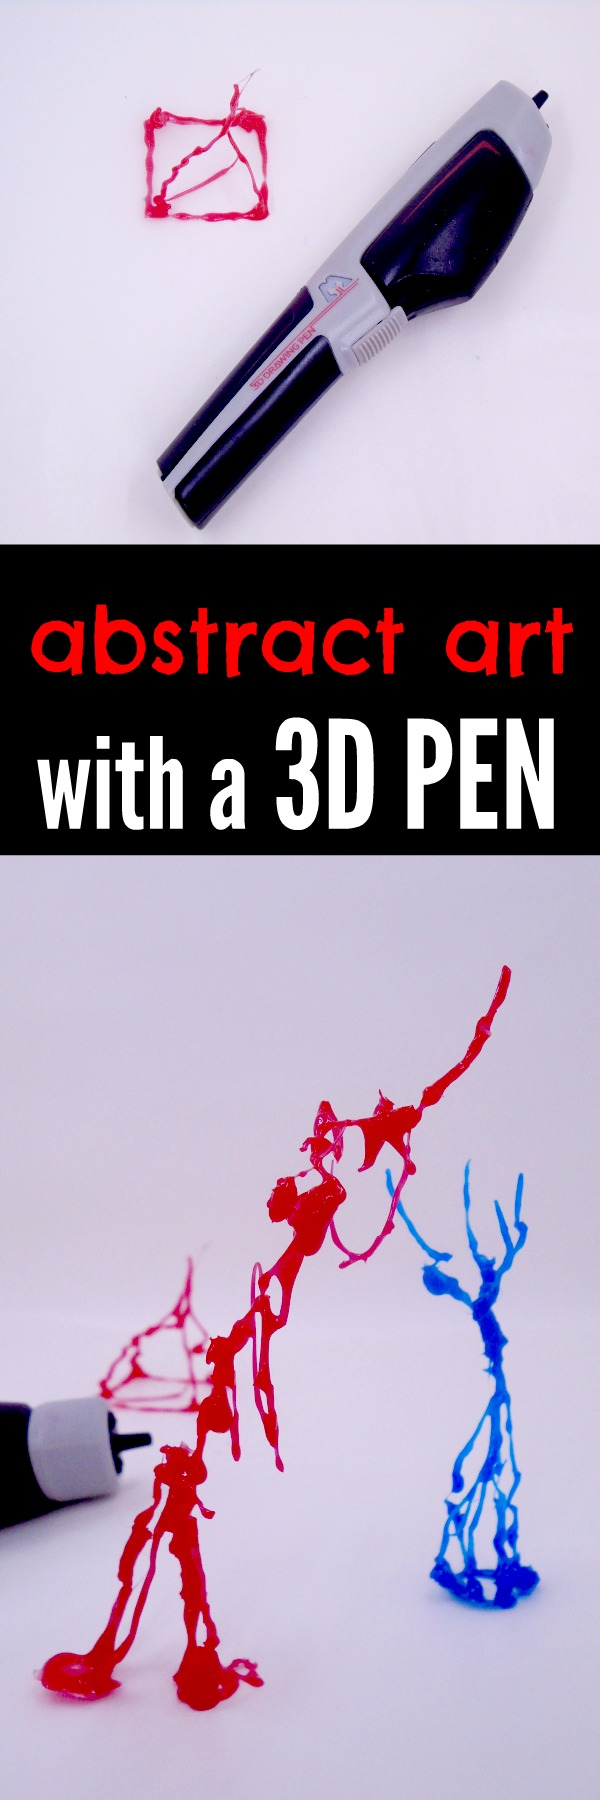 Learn about abstract art and create your own with a cool 3D Pen. Take a look at how we use the AtmosFlare 3D Pen to learn about abstract art.